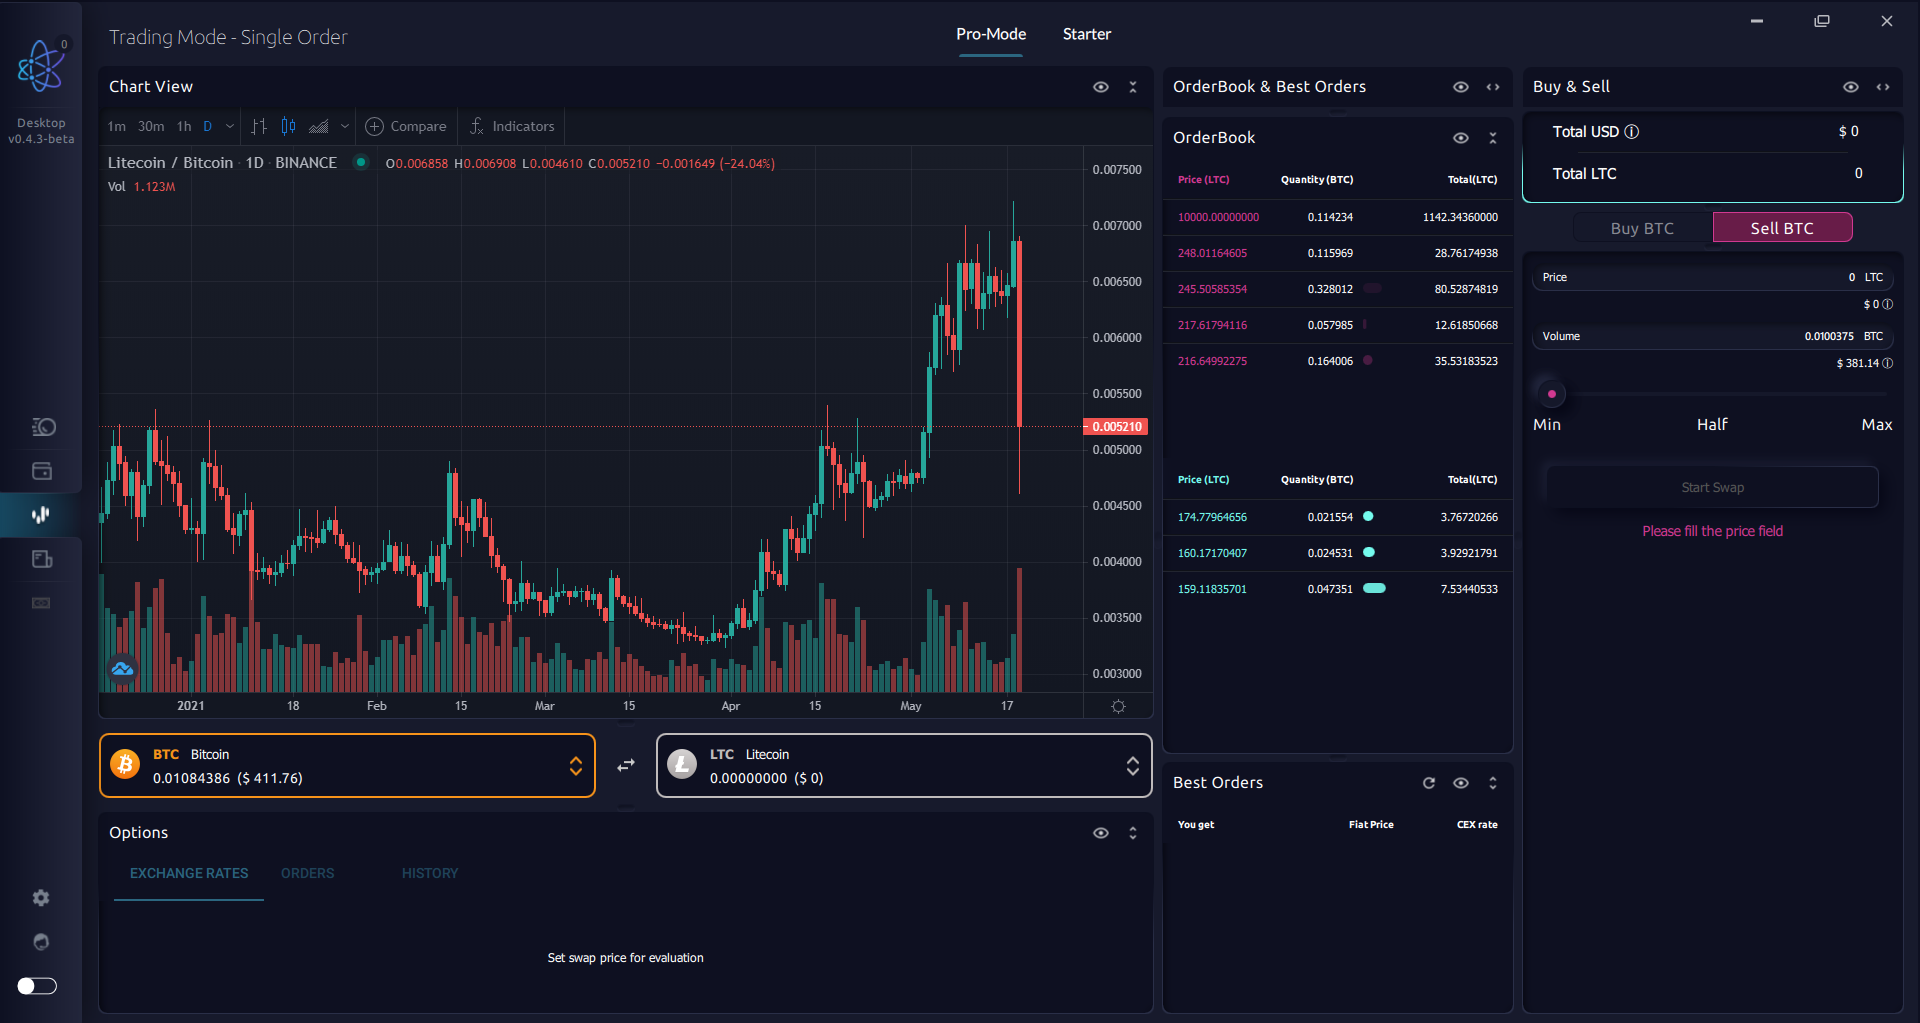 Trade BTC, LTC, and more on DEX trading interface. AtomicDEX v0.4.3 DEX/ Trading Interface